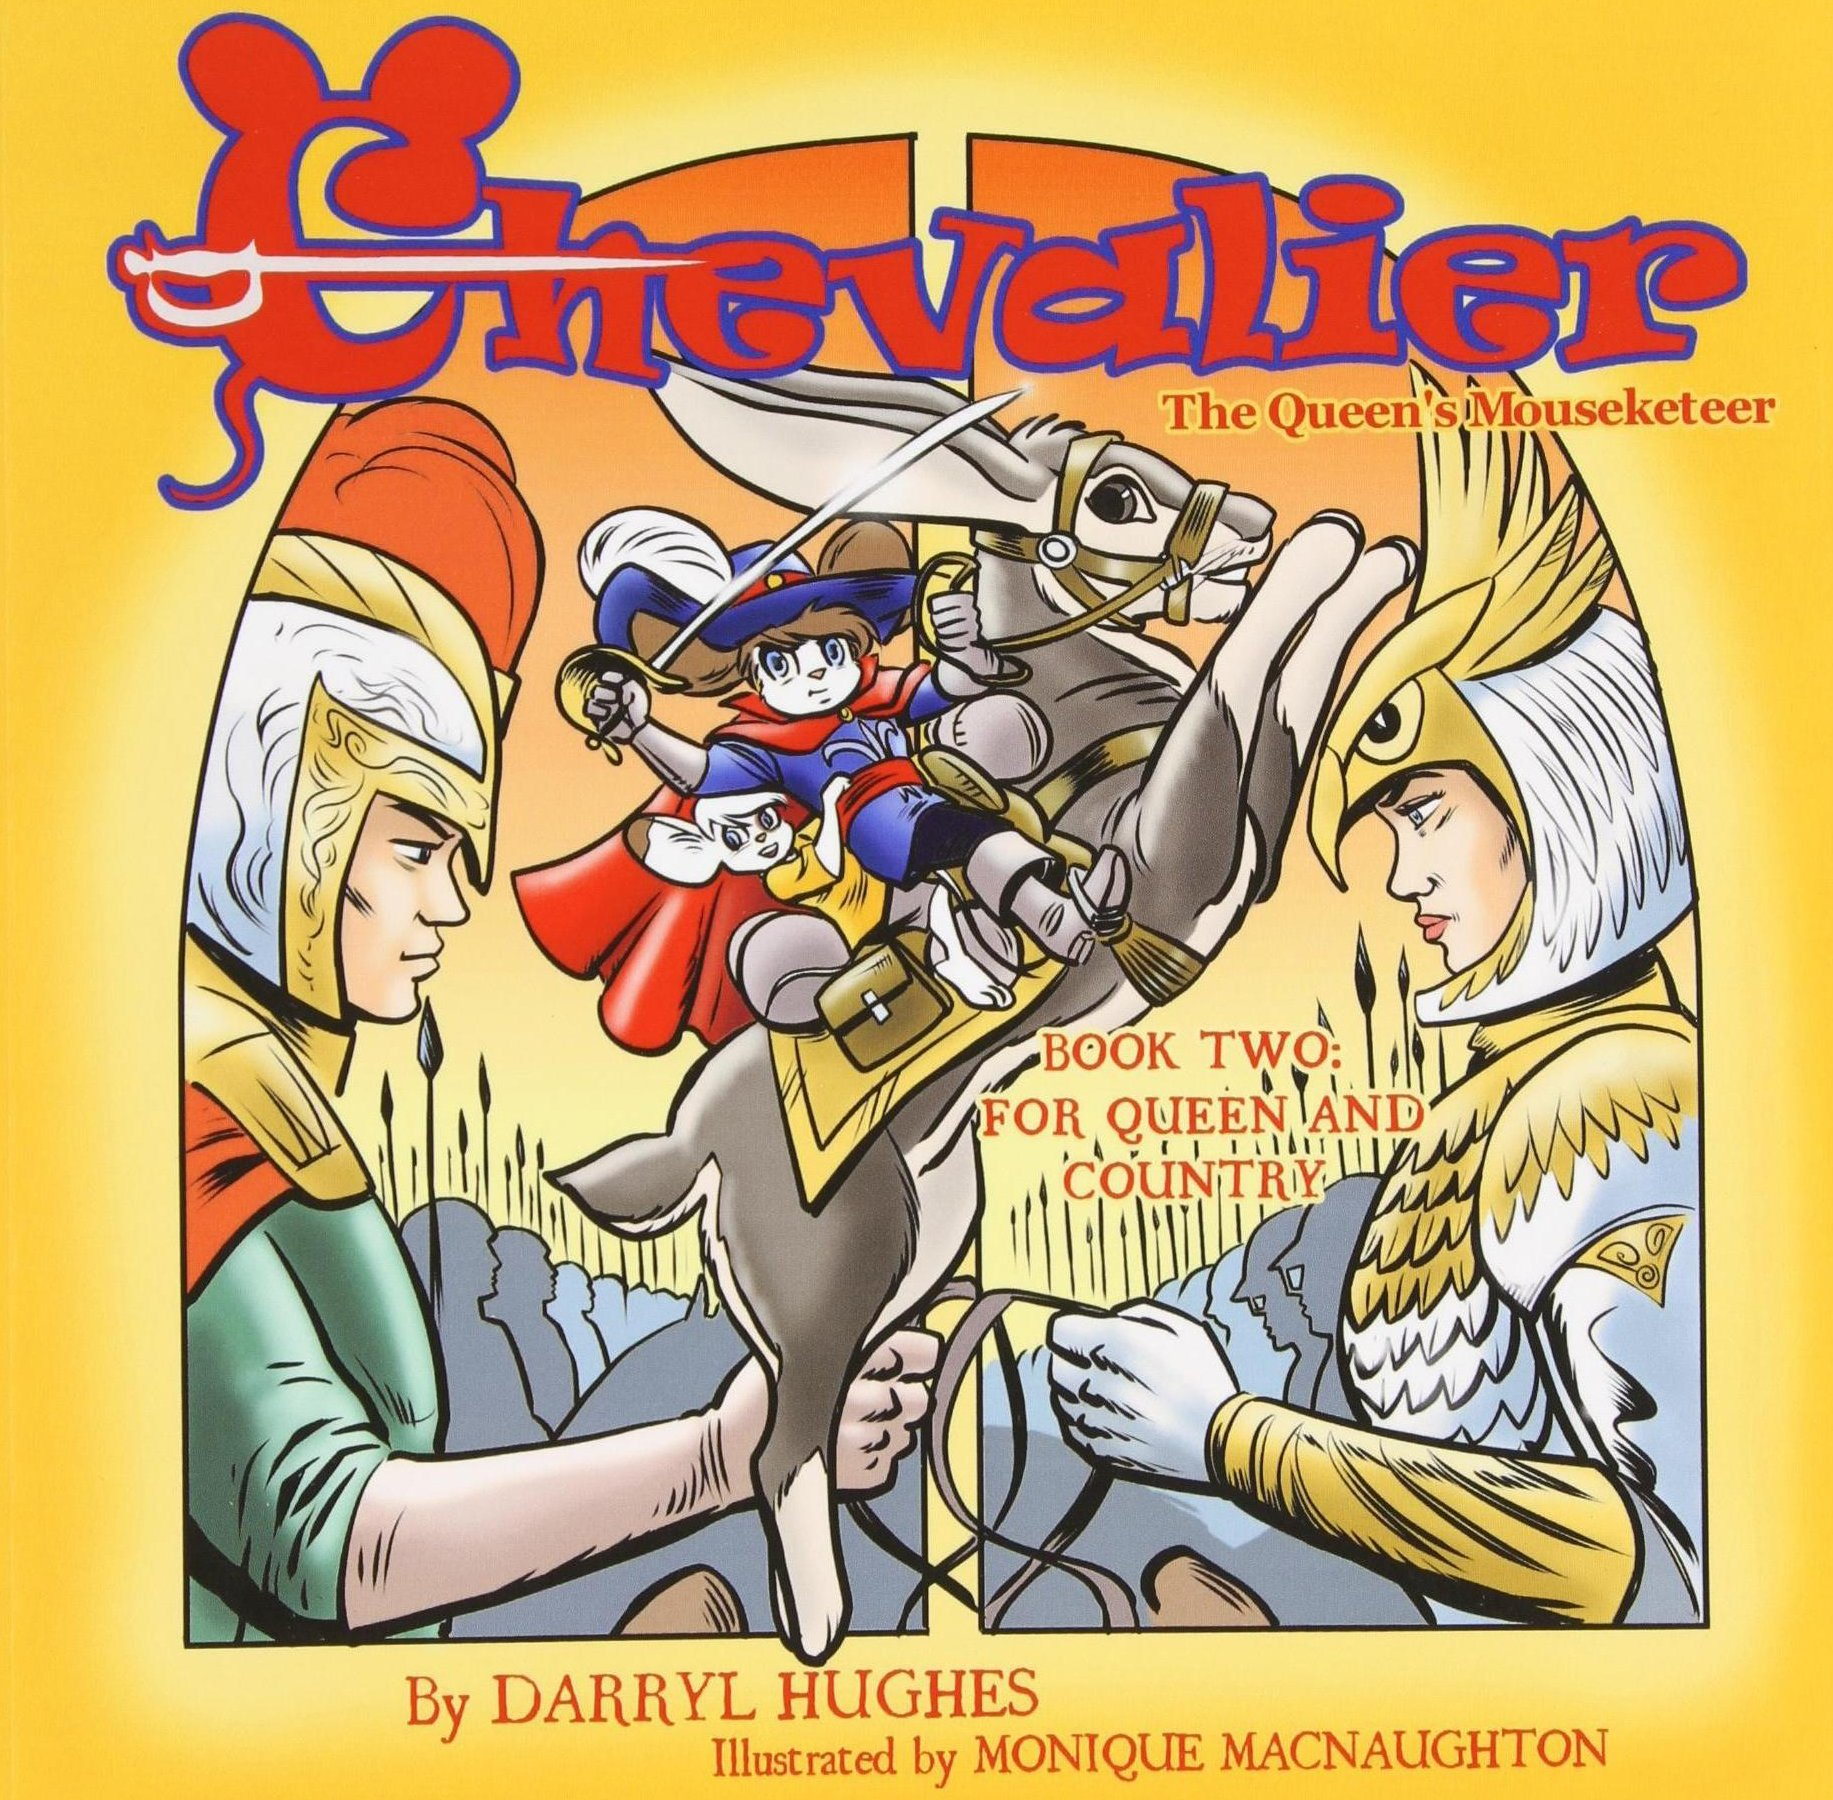 Read Online Chevalier the Queen's Mouseketeer: For Queen and Country(Fantasy Books for Kids. Book two) ebook